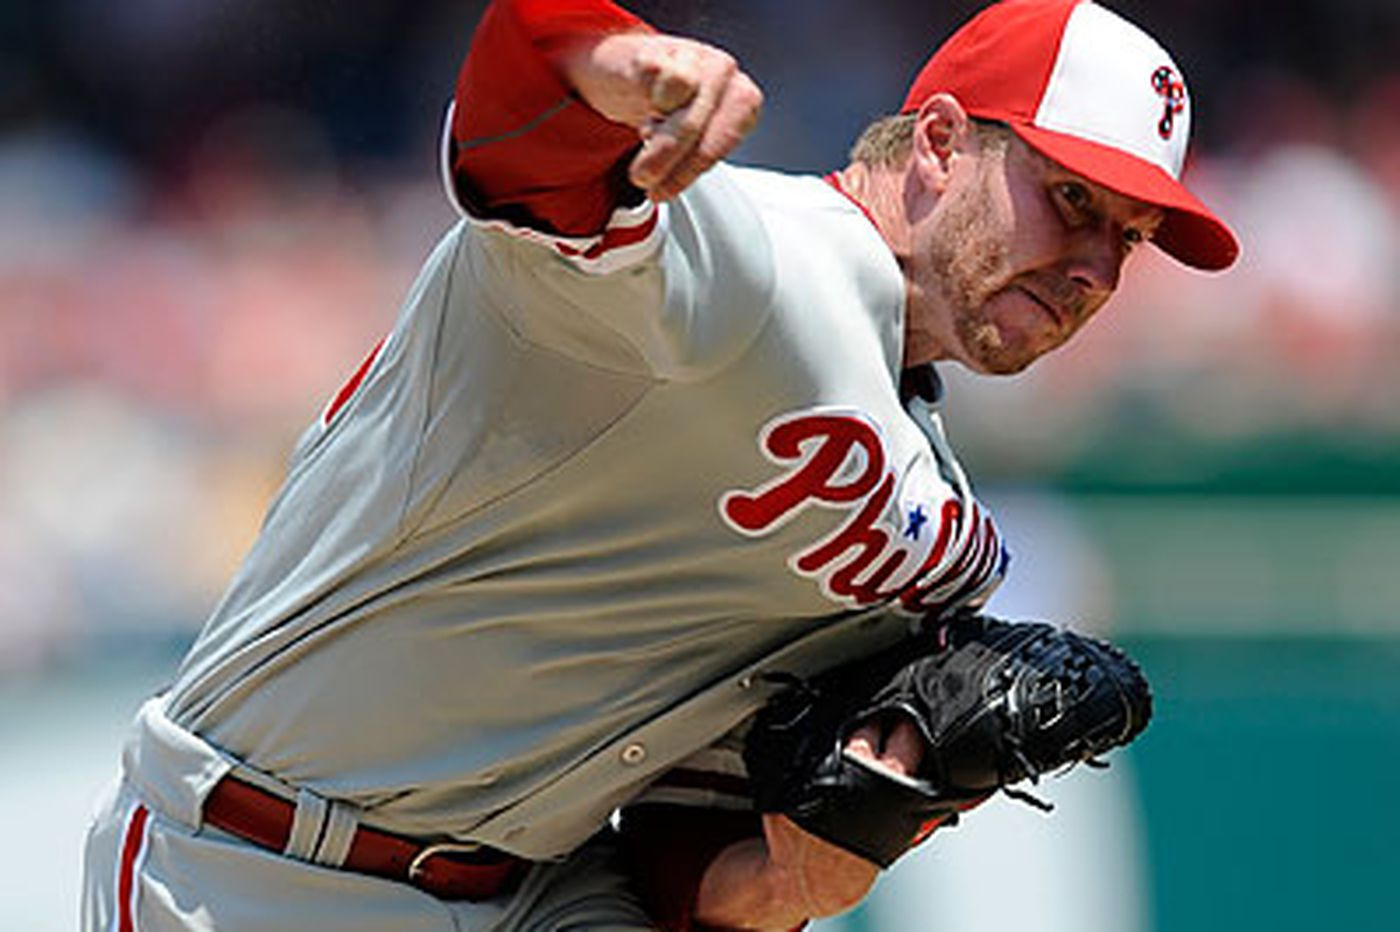 Halladay labors in D.C. but shows why he's No. 1